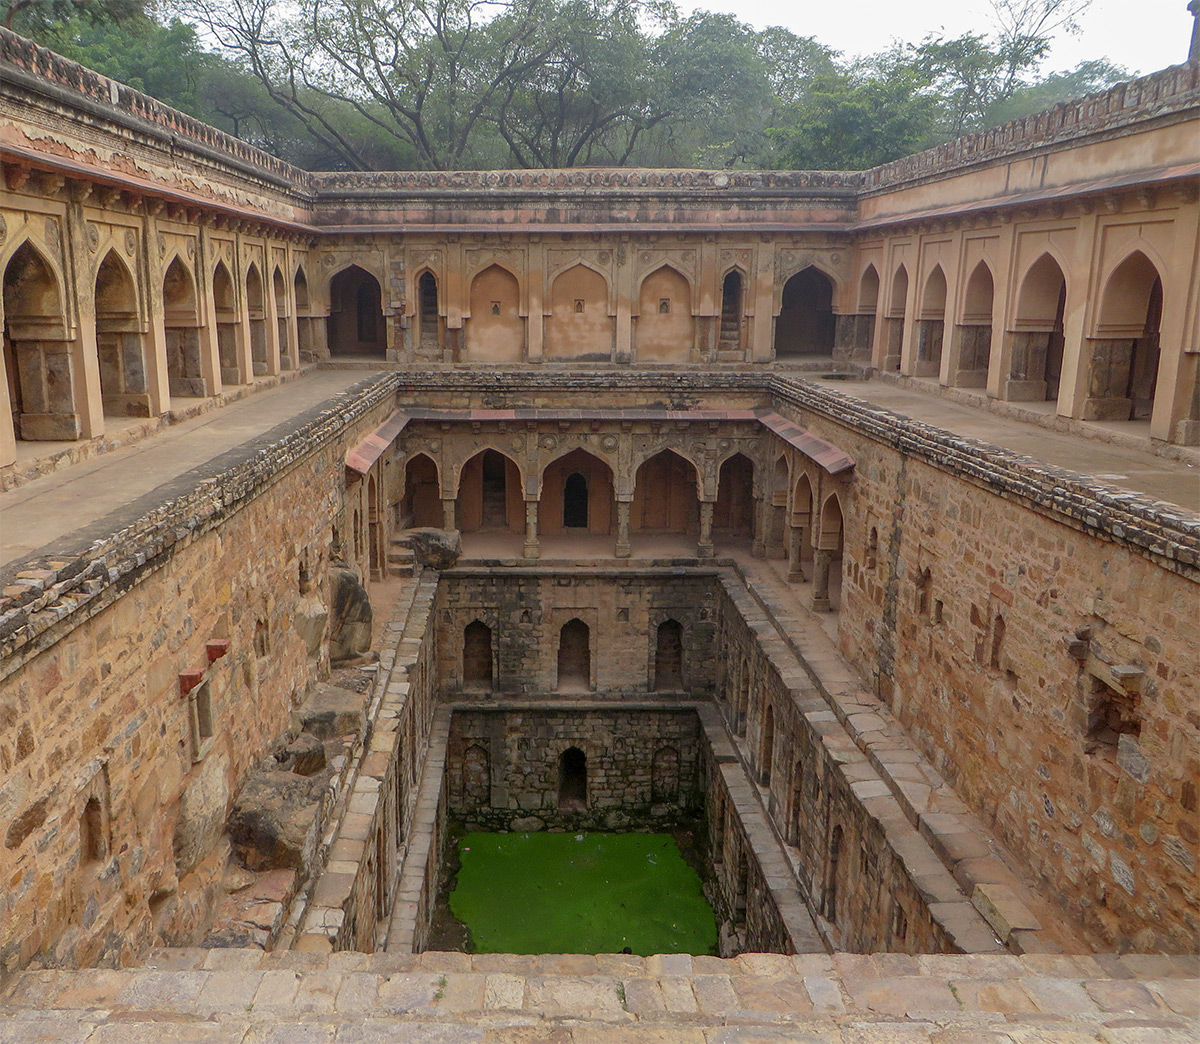 India stepwell photos by Victoria Lautman